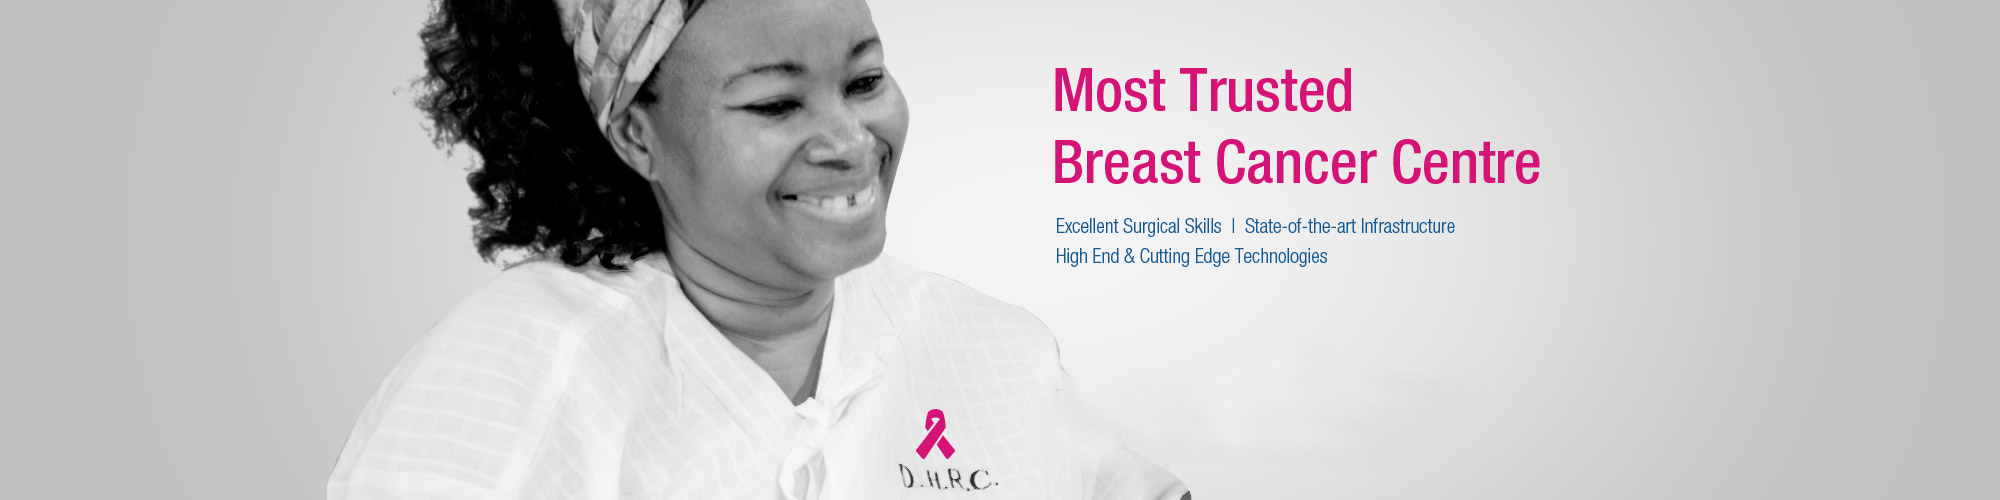 Most Trusted Breast Cancer Treatment Centre in India